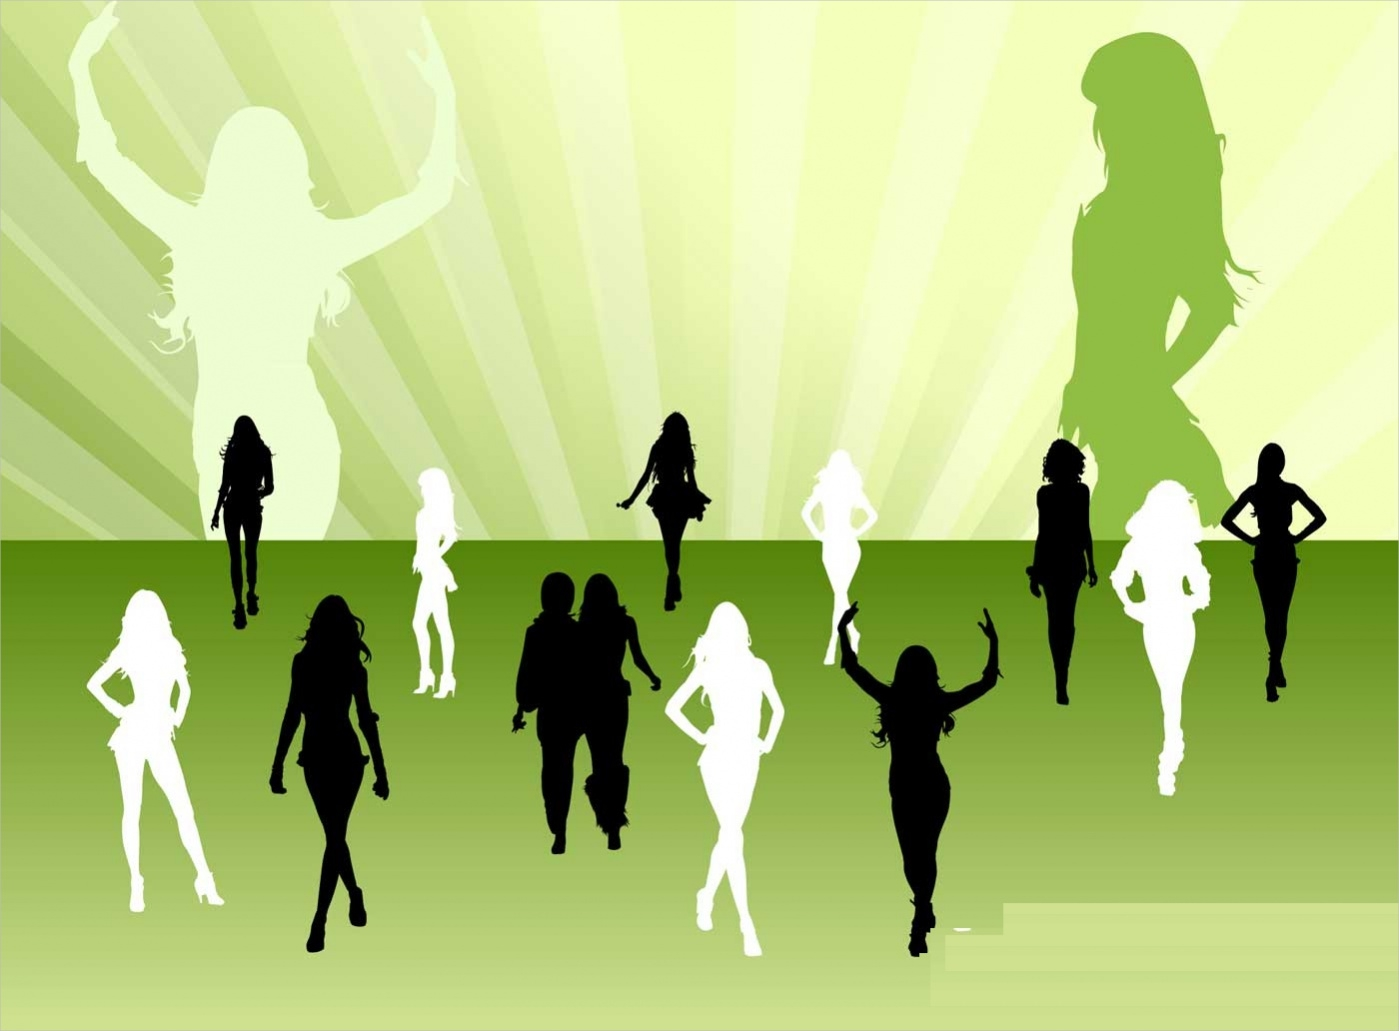 editable woman silhouette